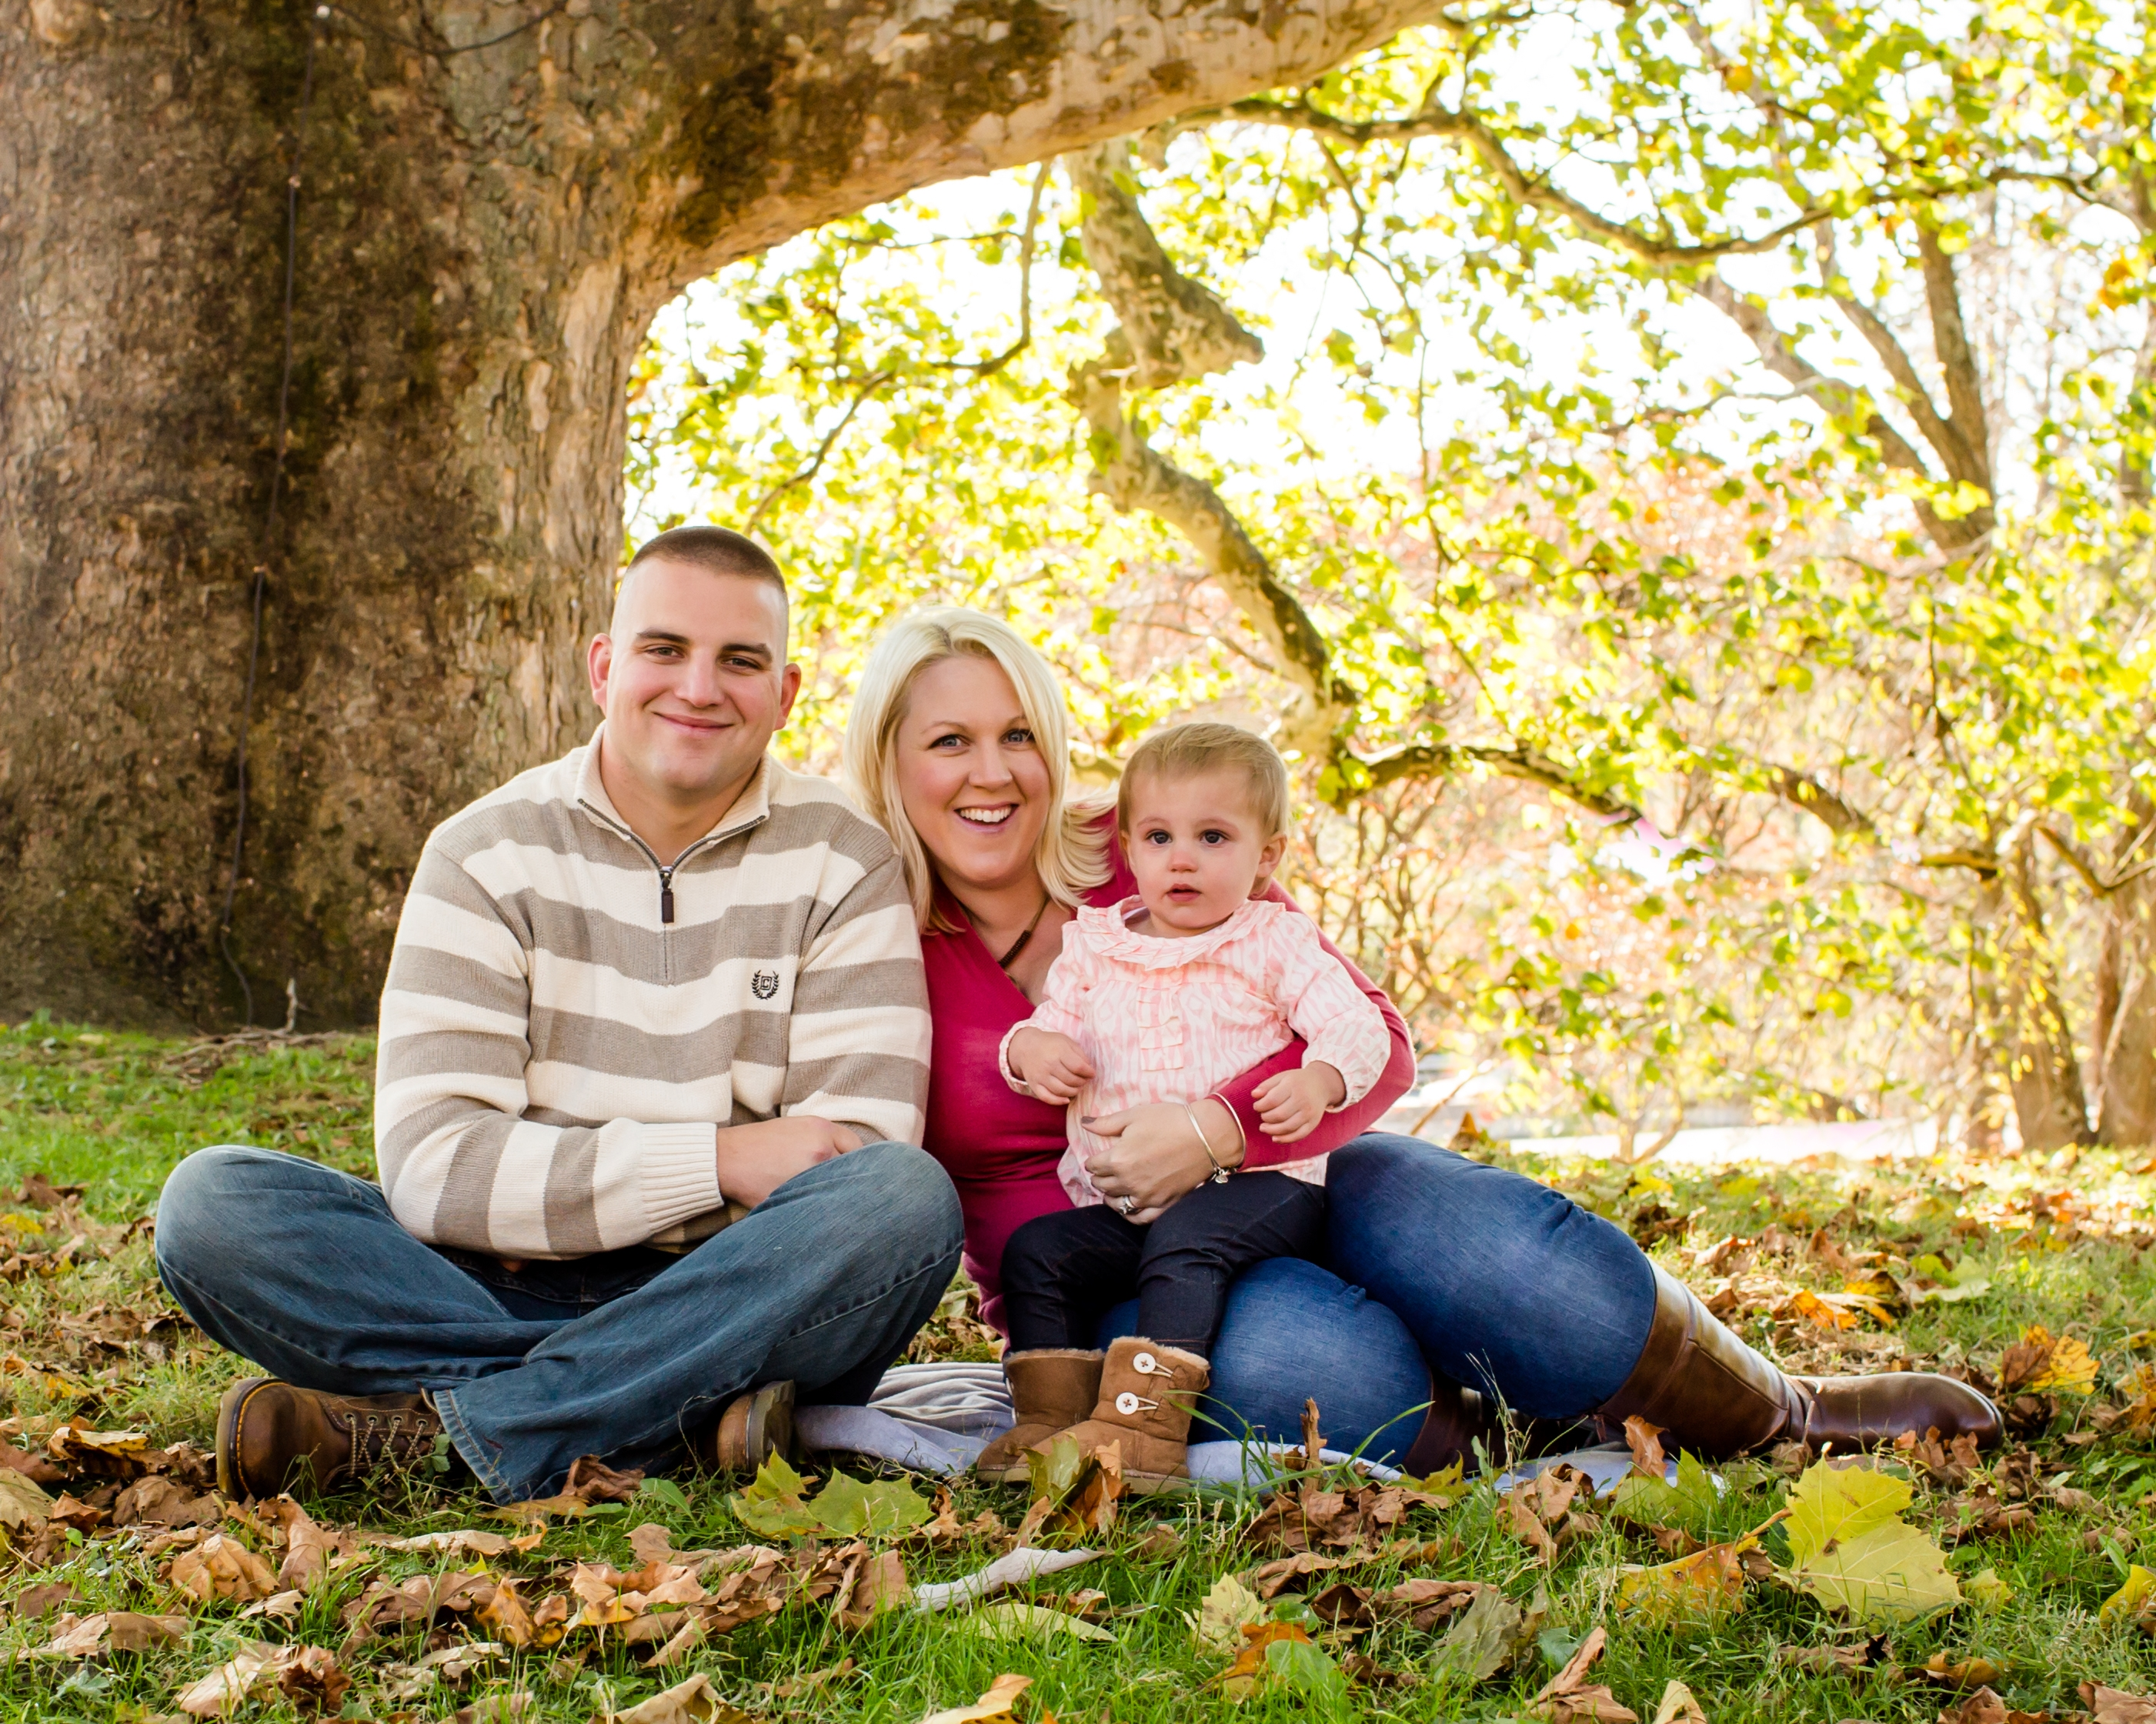 the family of little feet Download little girl feet stock photos affordable and search from millions of royalty free images, photos and vectors.